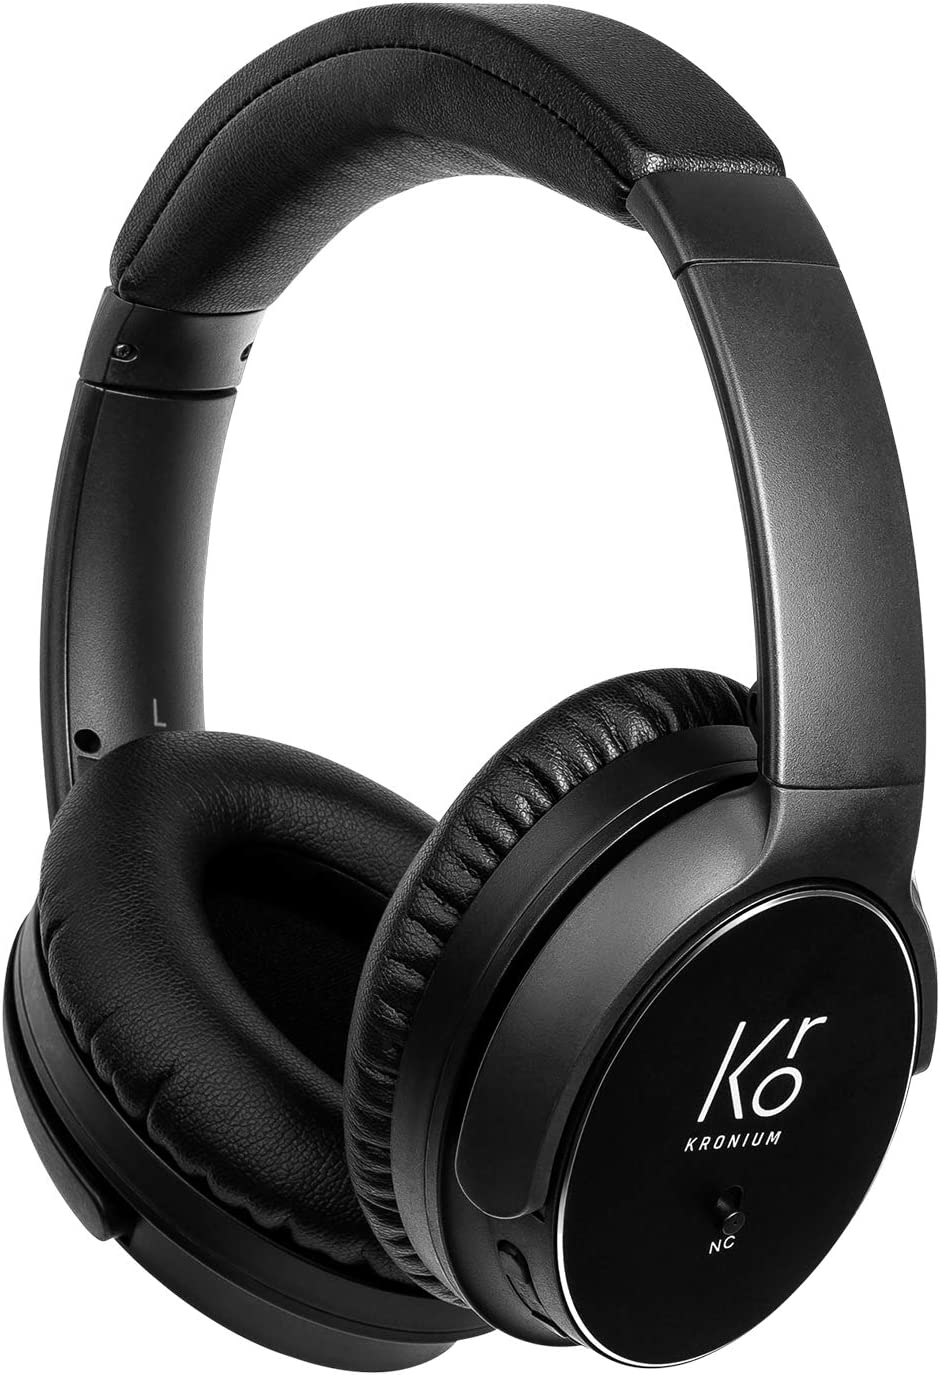 KRONIUM Active Noise Cancelling Headphones Wireless Bluetooth Headset Superior Deep Bass Foldble Over Ear Headphones with Mic for Travel Work TV PC Cellphone-with 3.5mm Audio Jack